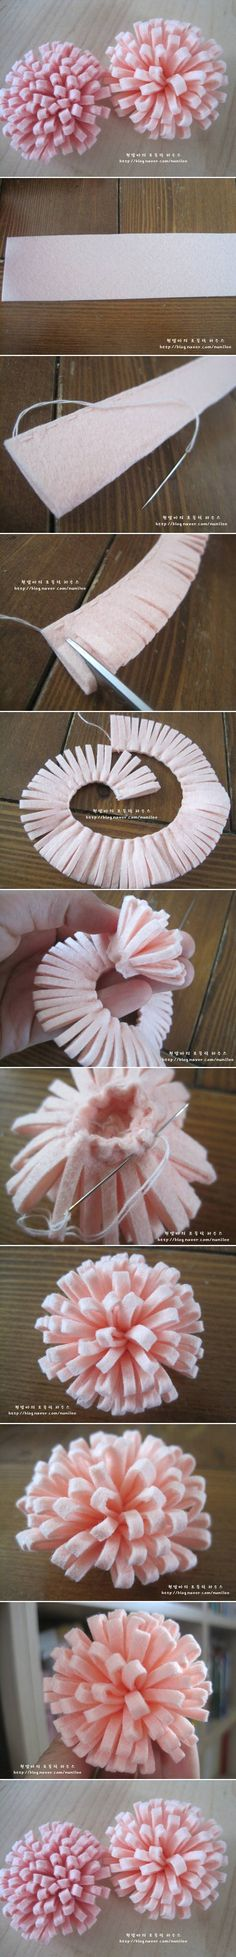 "DIY Simple Easy Felt Flower: ""DIY Simple Easy Felt Flower - perfect for Girlie Glue bows!"", ""How to make Simple Easy Felt Flower step by step Felt Diy, Felt Crafts, Fabric Crafts, Sewing Crafts, Diy And Crafts, Paper Crafts, Felt Flowers, Diy Flowers, Fabric Flowers"